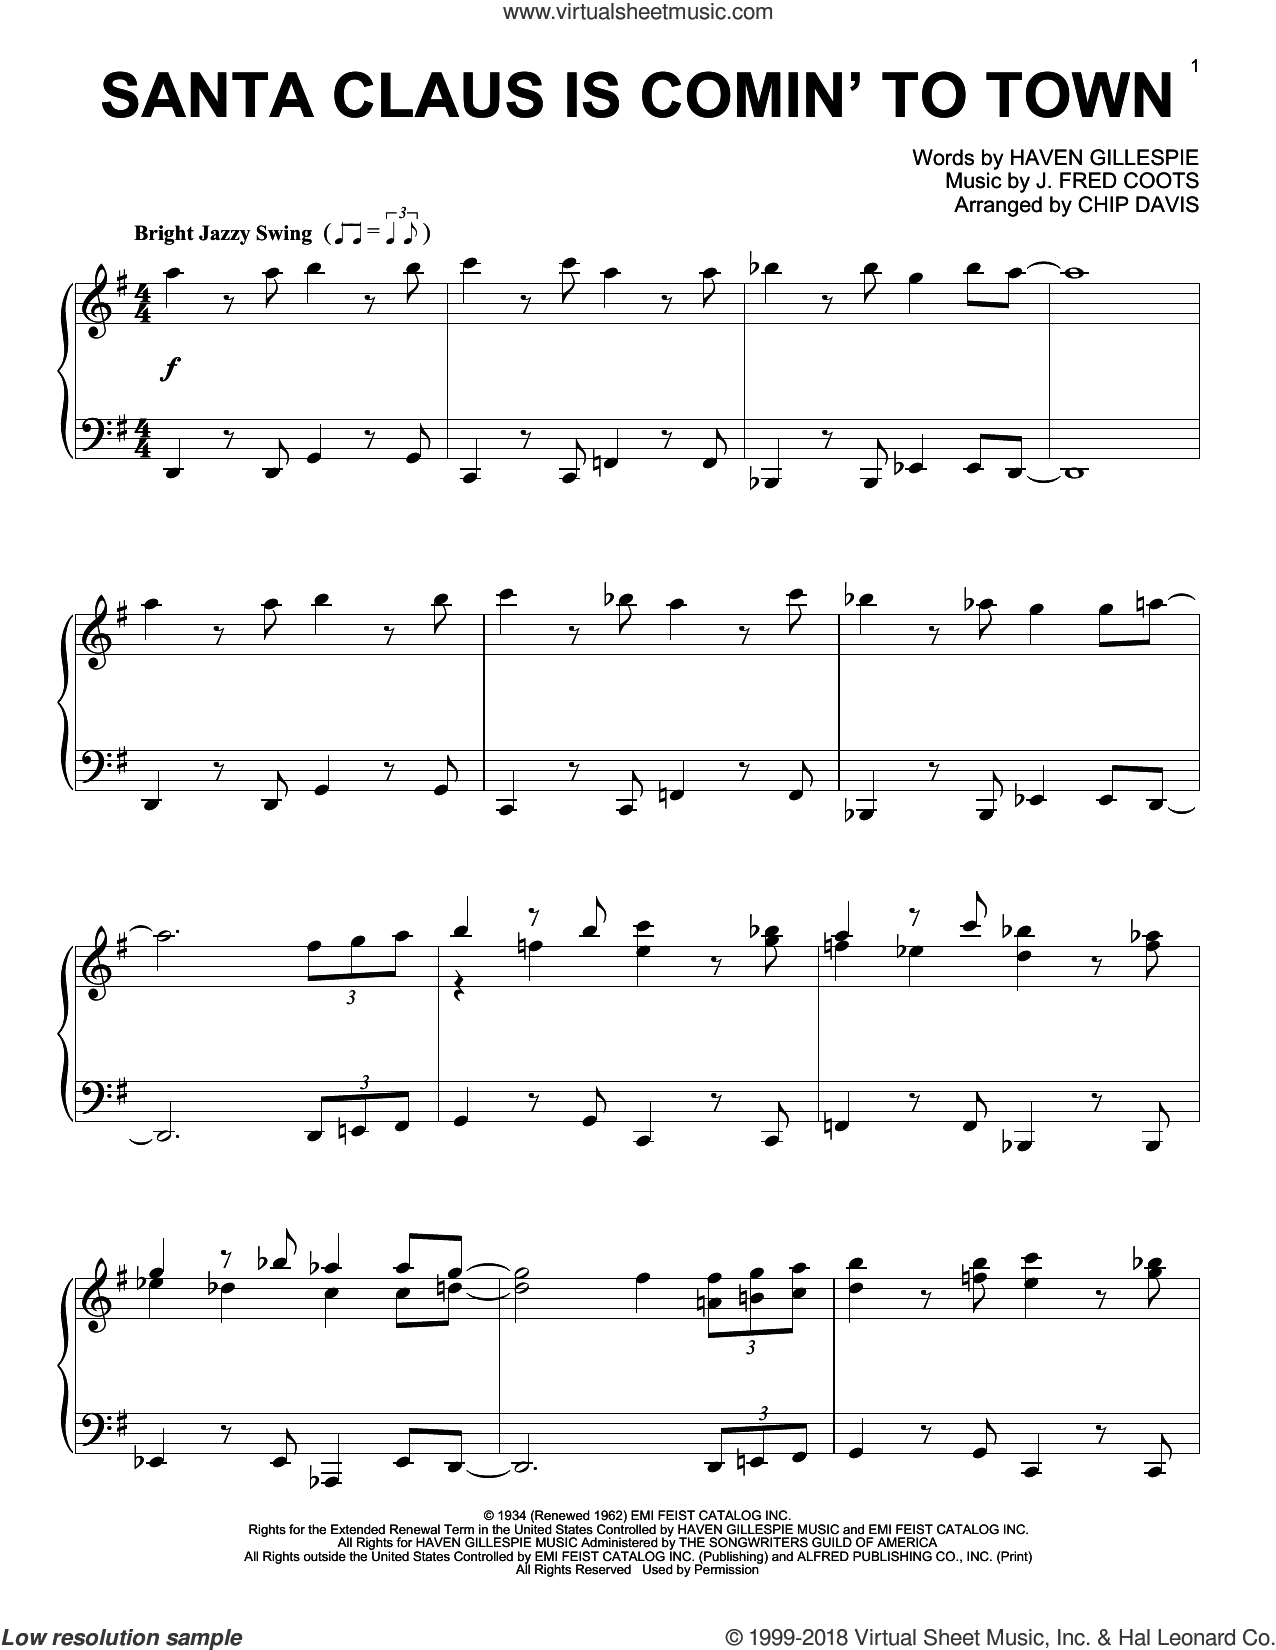 Santa Claus Is Comin' To Town sheet music for piano solo by Mannheim Steamroller, Haven Gillespie and J. Fred Coots, intermediate skill level